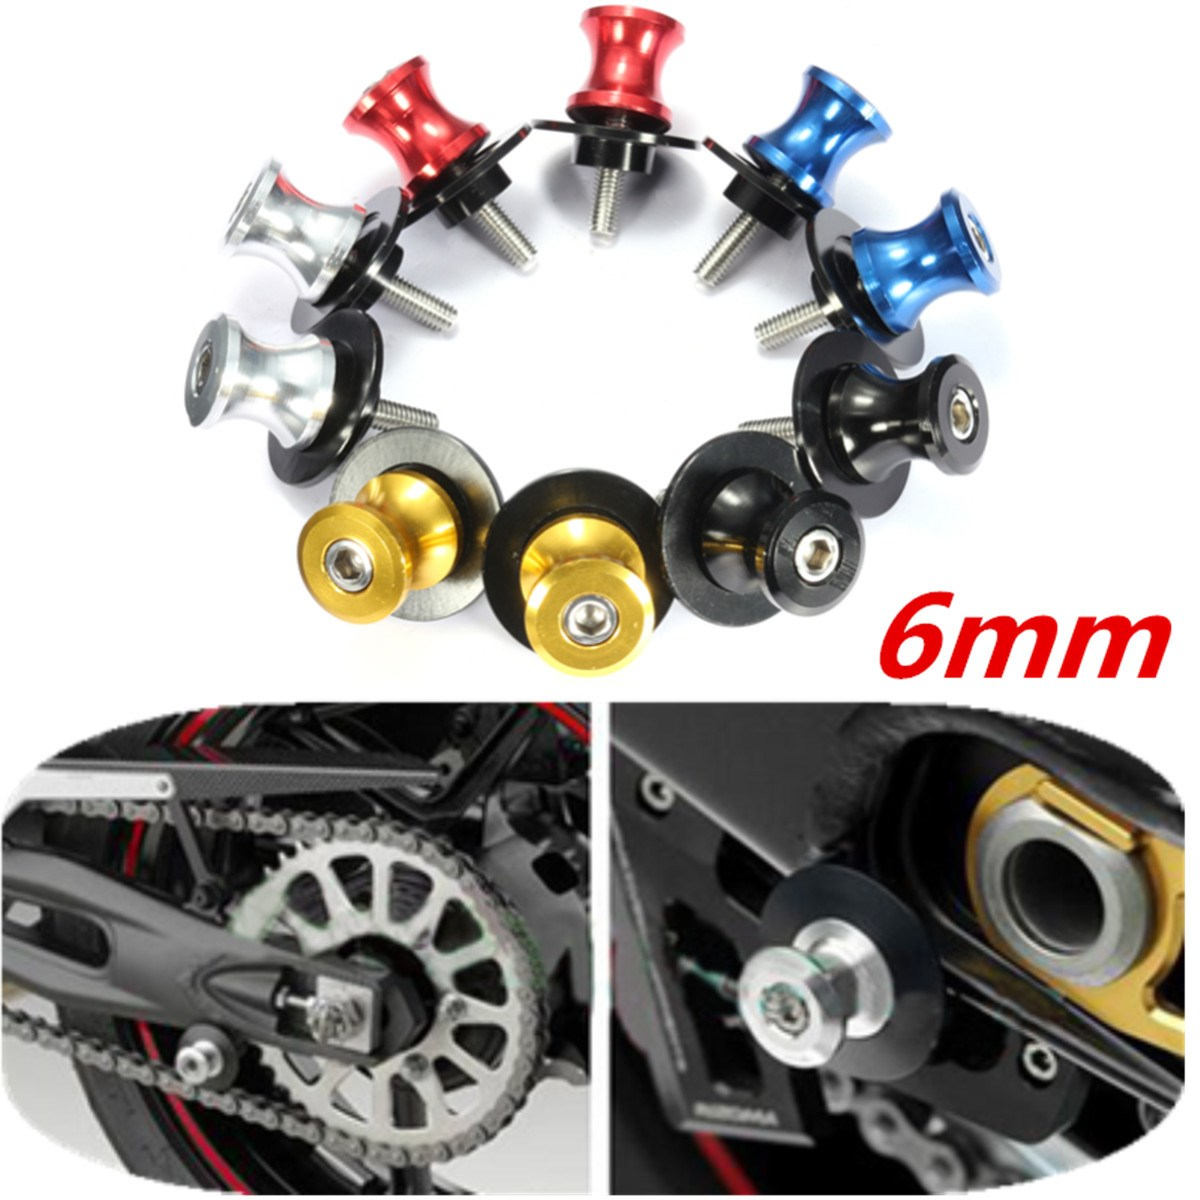 6MM Motorcycle Swingarm Sliders Spools For Yamaha YZF R6 R6S R7 YZF1000 golden 6mm motorcycle carbon fiber swingarm spools slider fits for yamaha yzf r1 r6 r6s yzfr1 yzfr6 yzfr6s yzf r6s